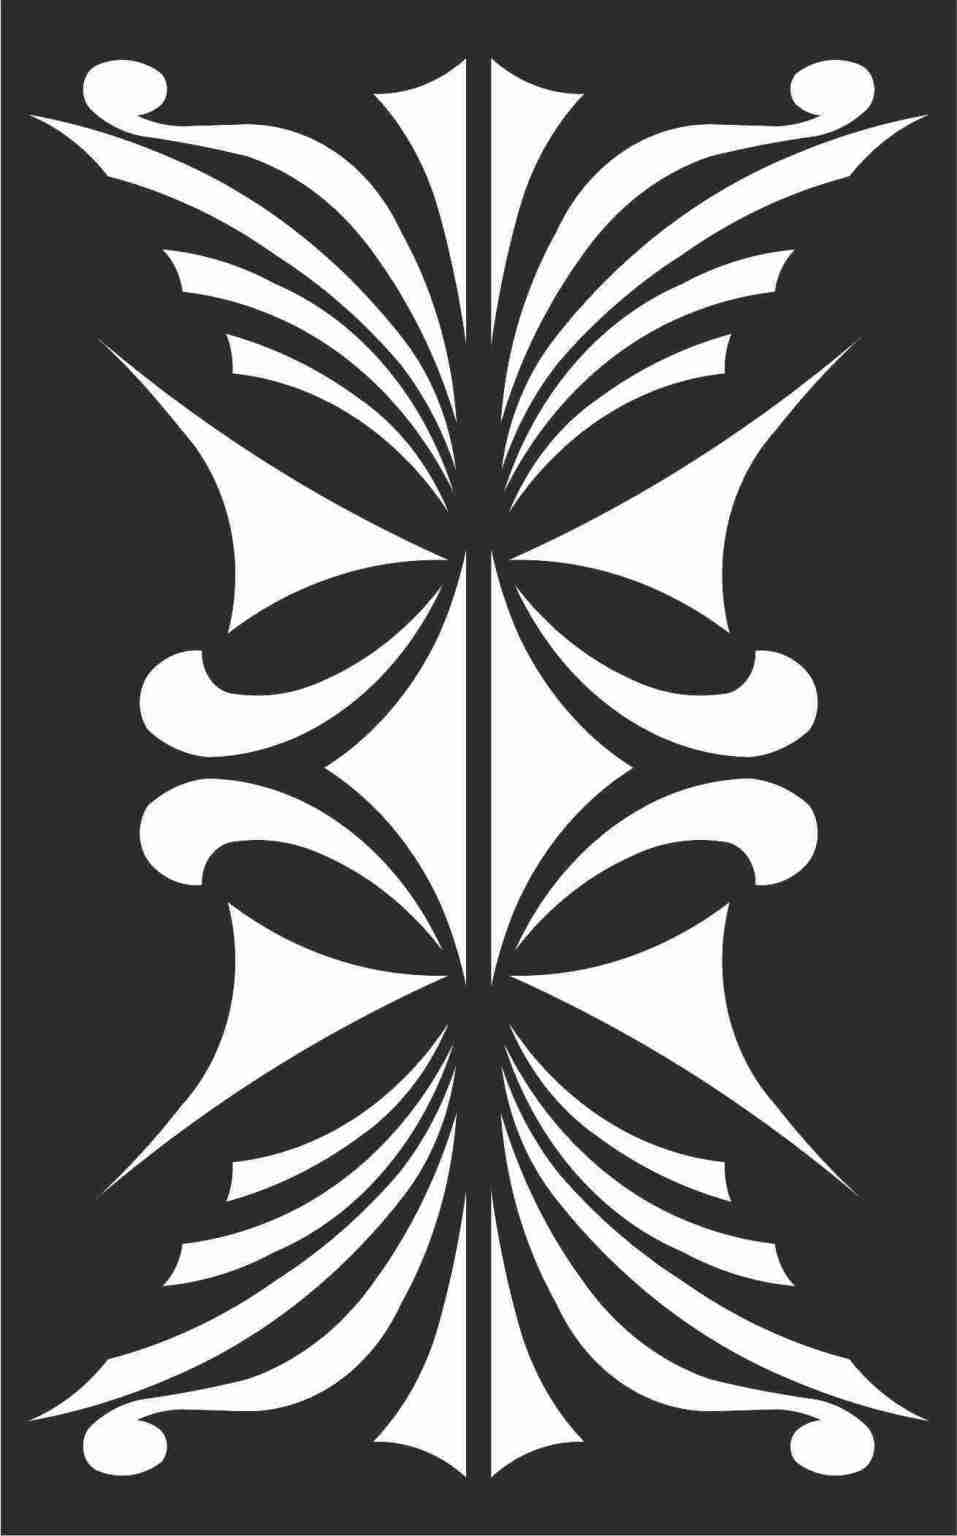 Decorative Screen Patterns For Laser Cutting 110 Free DXF File